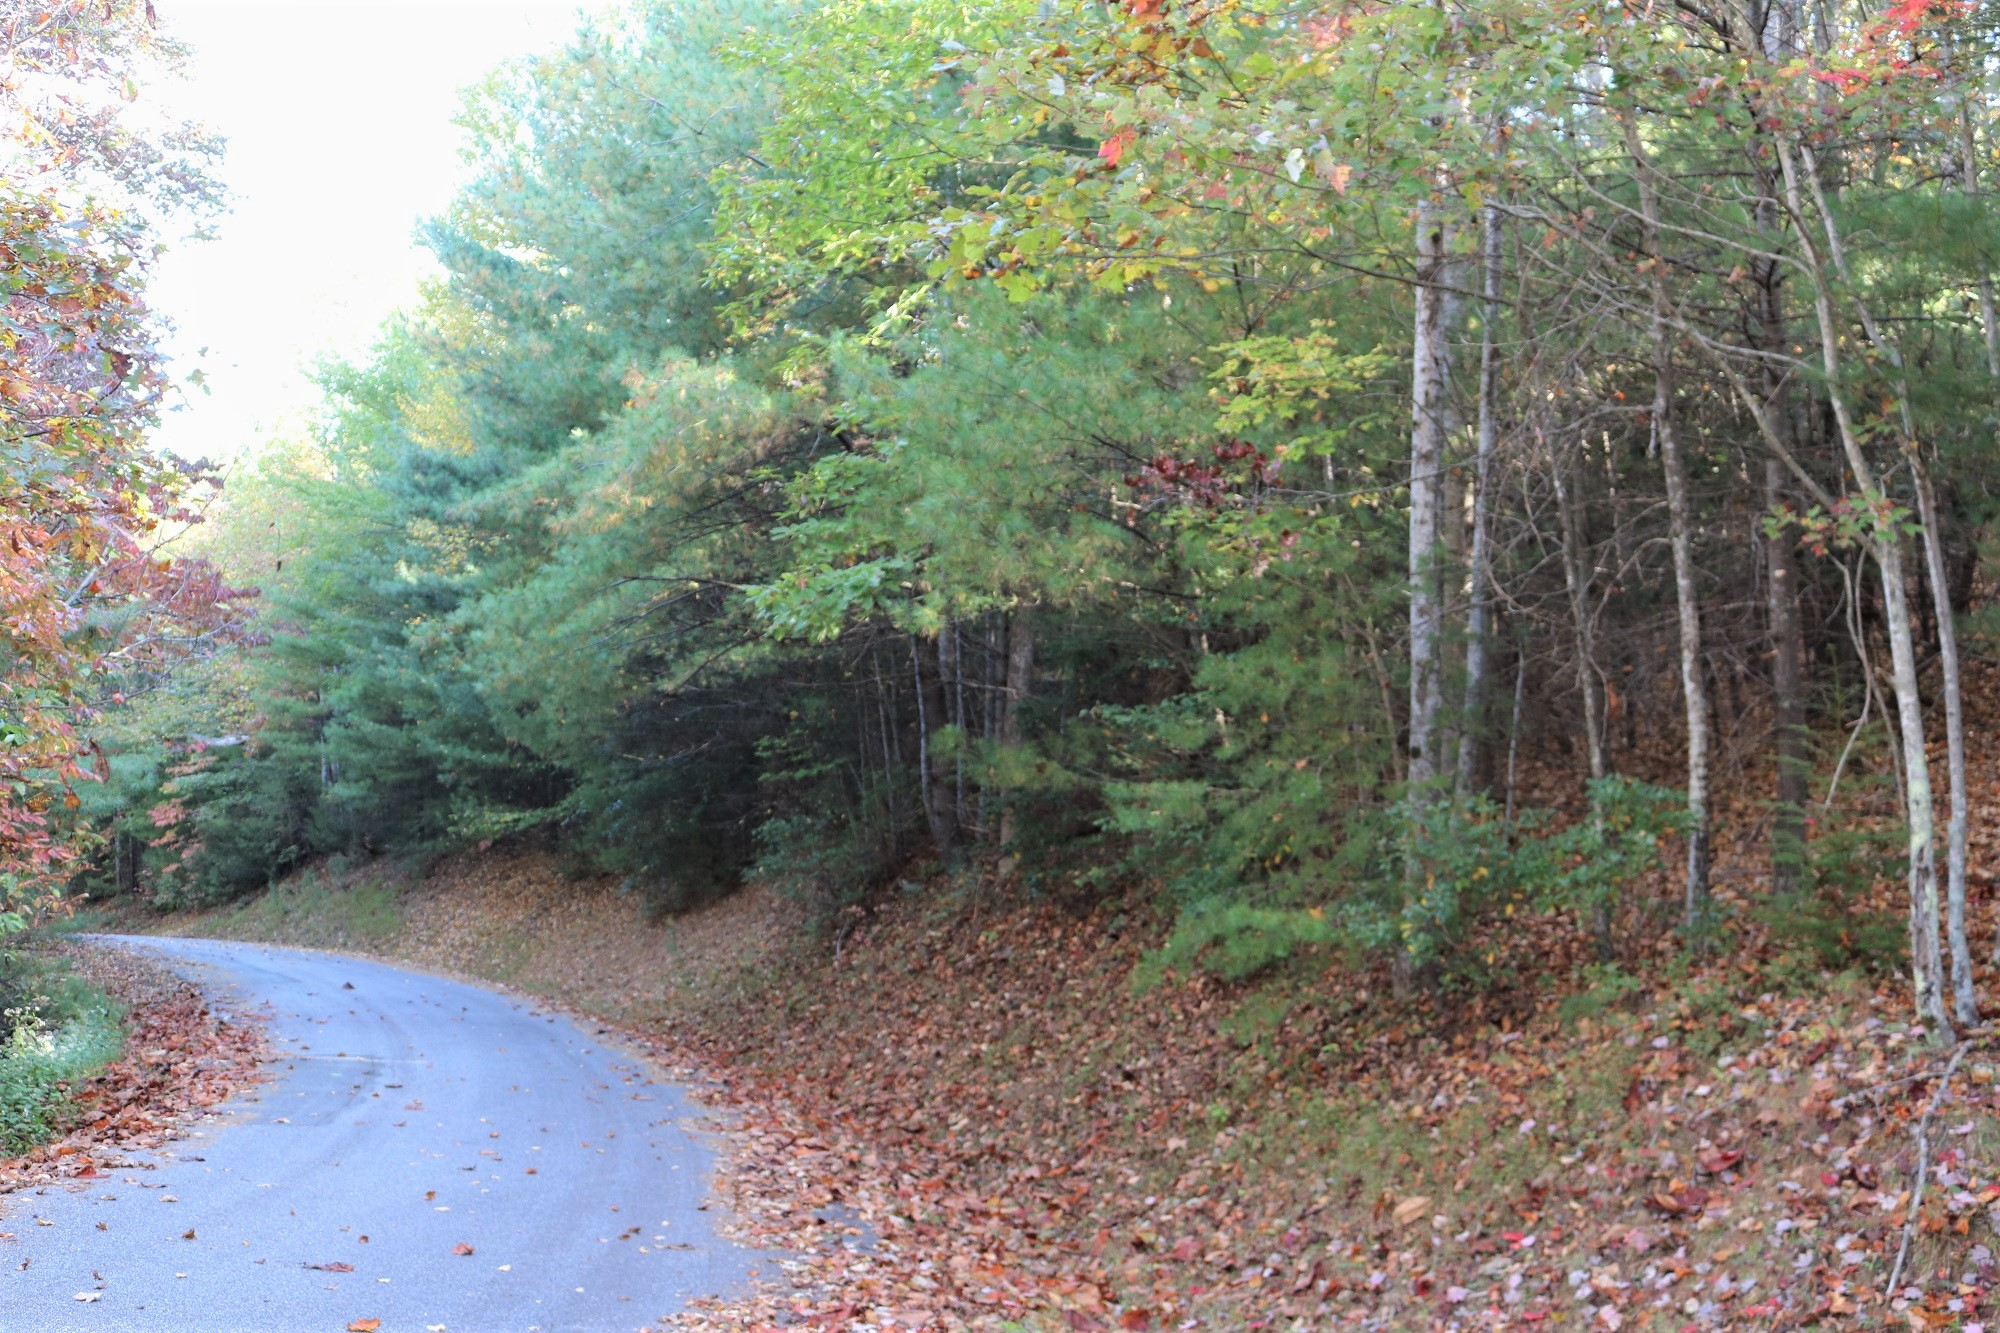 19 ACRES OF MOUNTAIN LAND AVAILABLE IN FOOTHILLS OF NC WITH CREEK 310 Fox Cove Rd.